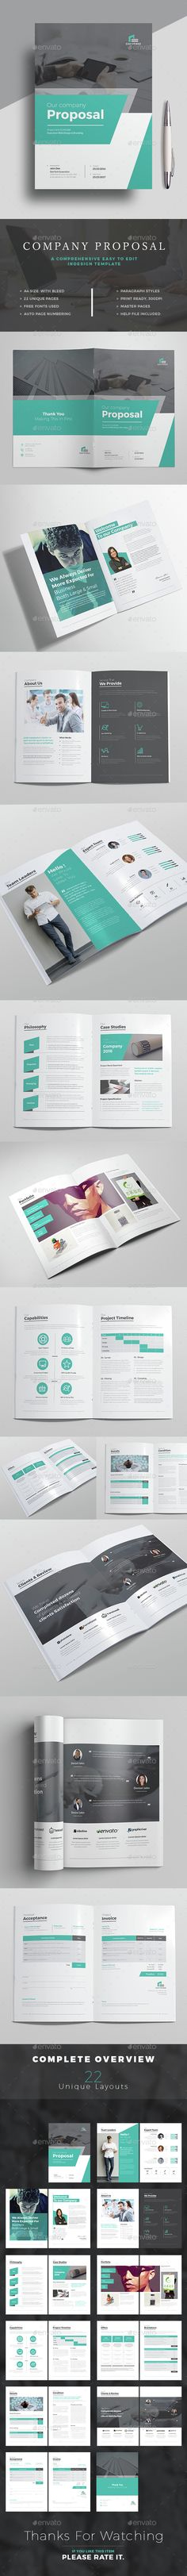 Proposal Proposal templates, Proposals and Brochures - best proposal templates